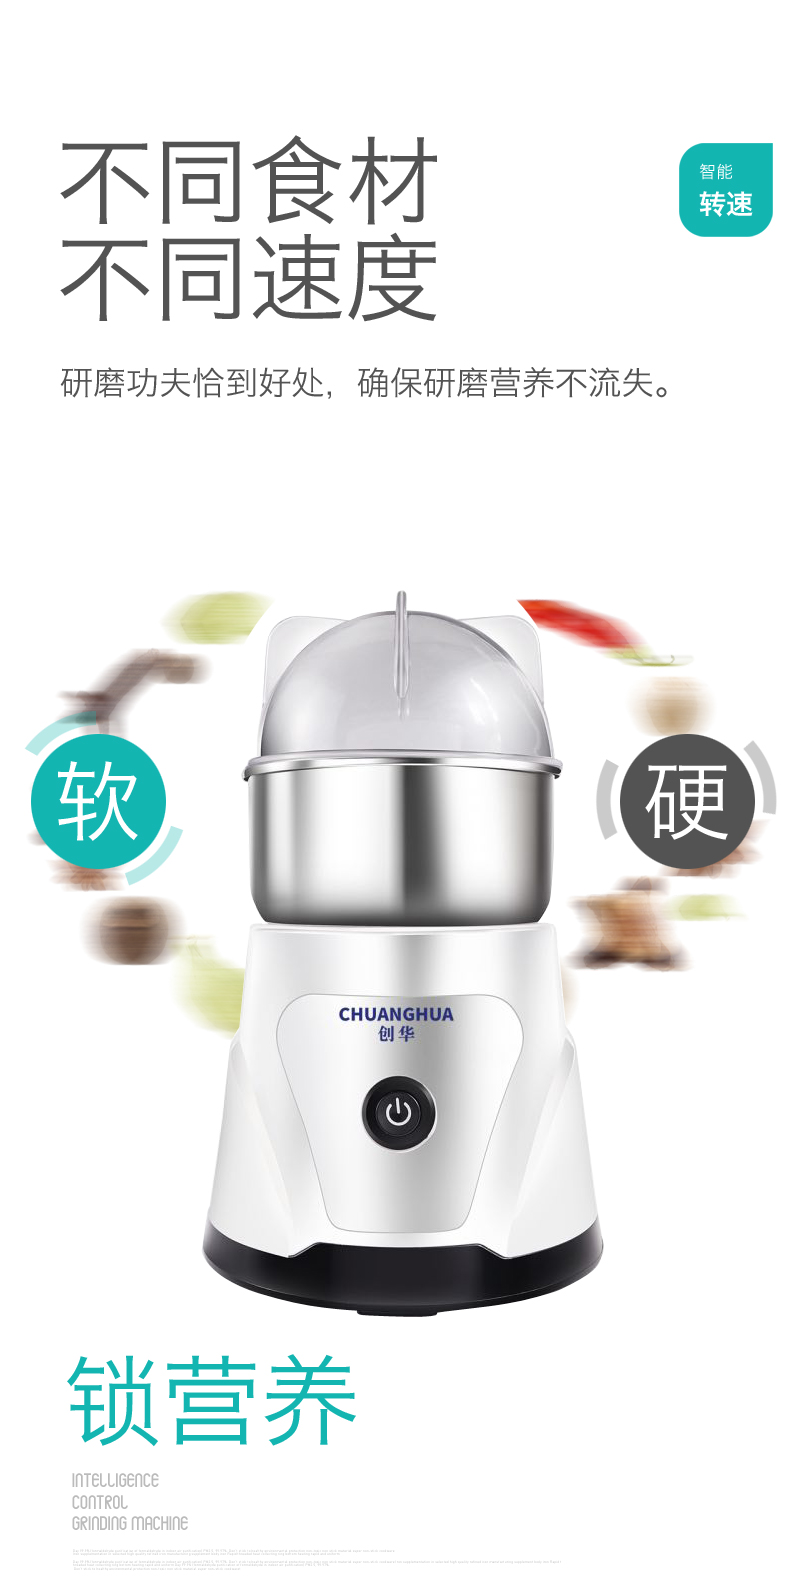 Grinder Mill Powder Machine Household Small Multi-functional Ultrafine Grain Mill Chinese Herbal Medicine Grinder 6